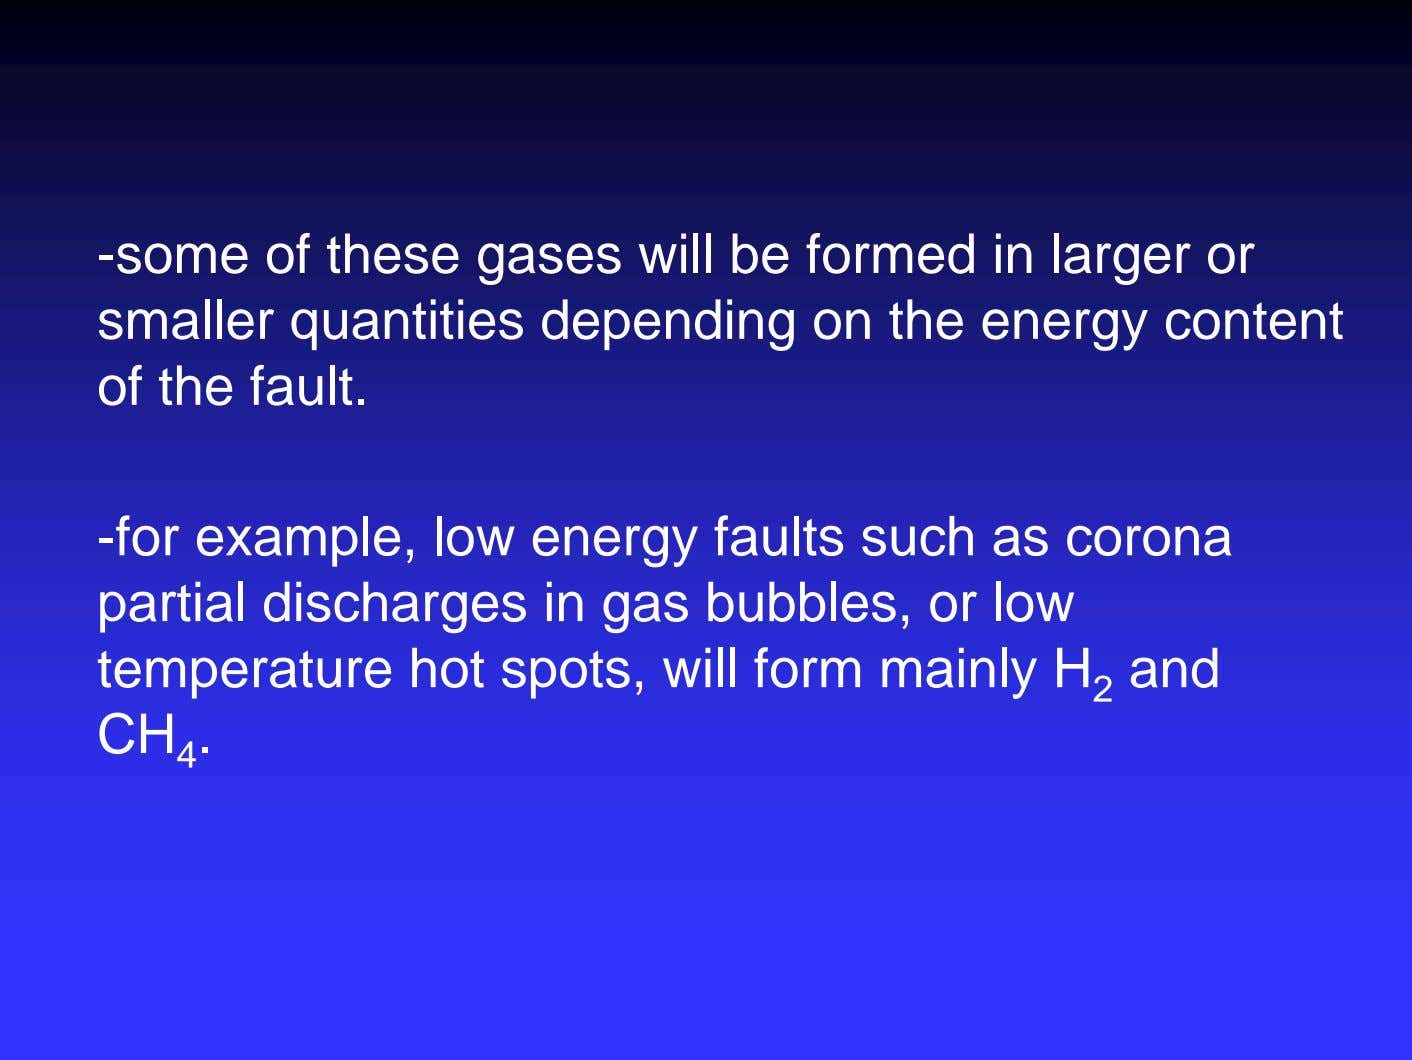 -some of these gases will be formed in larger or smaller quantities depending on the